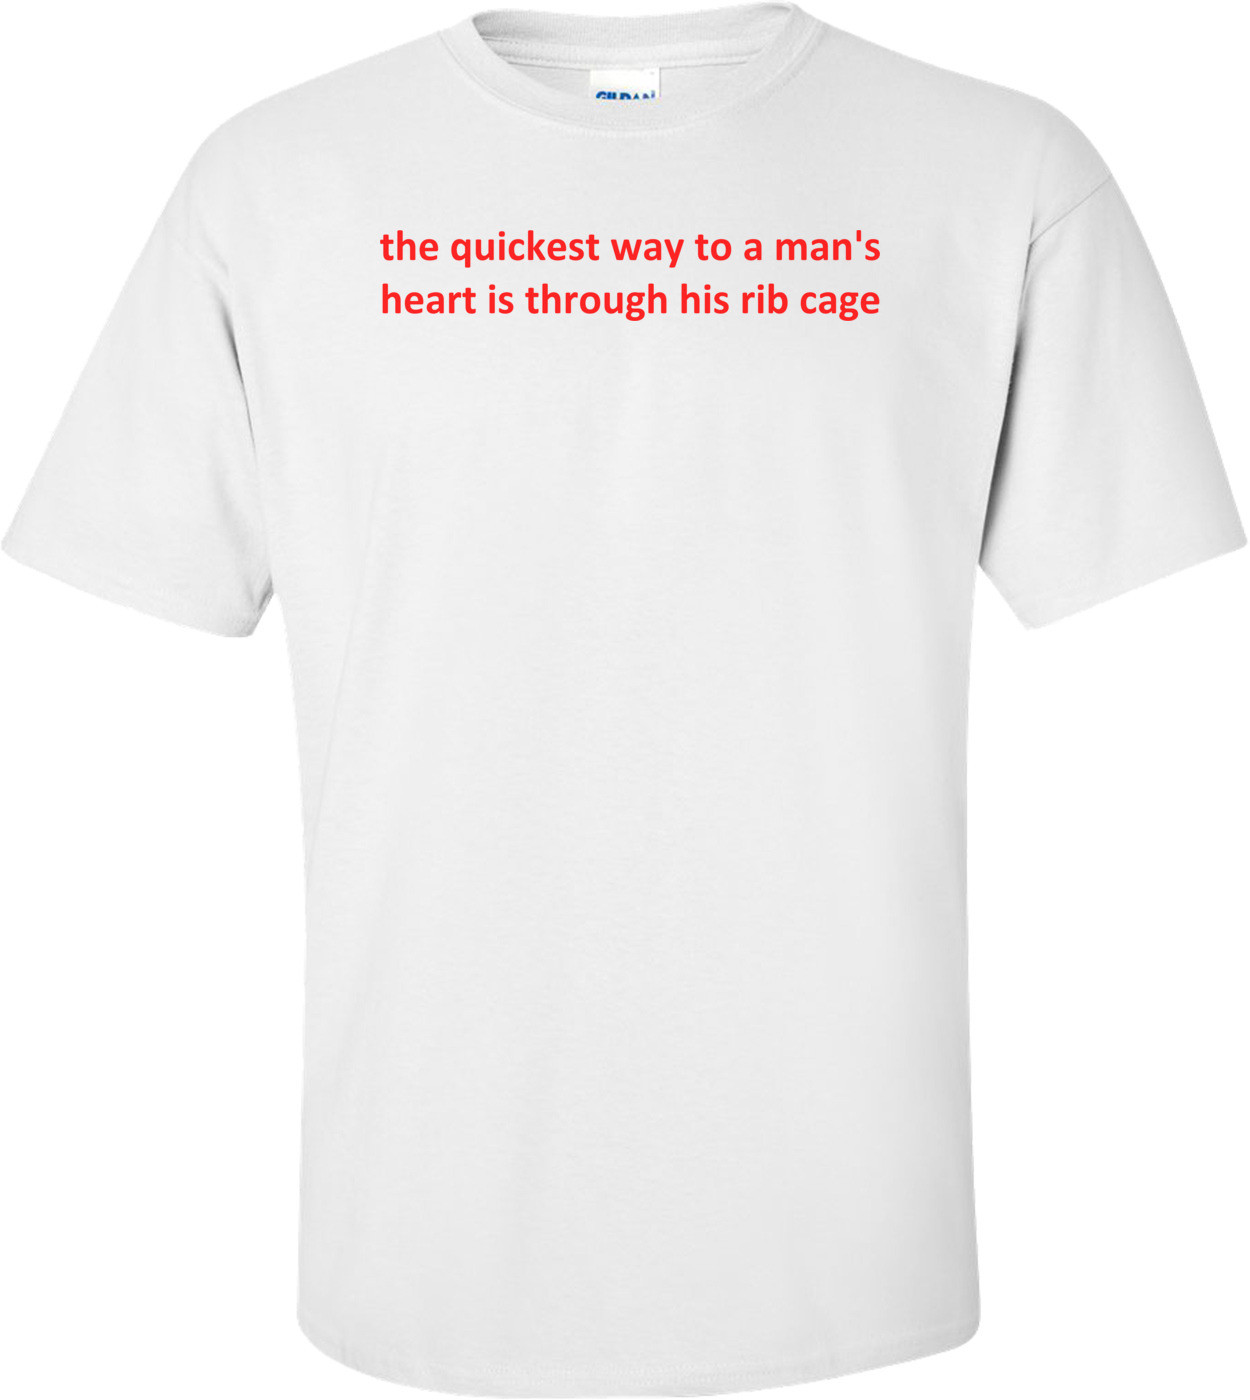 The Quickest Way To A Man's Heart Is Through His Rib Cage Shirt